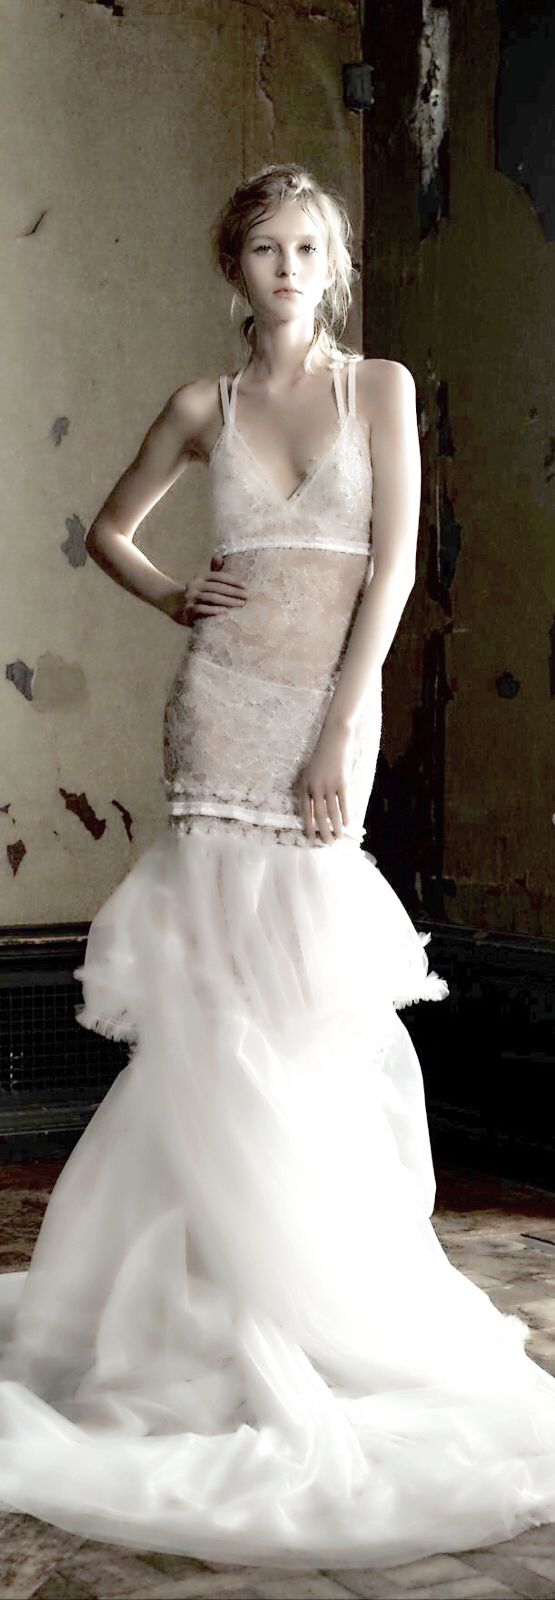 #VeraWang2016 - #Pinterestcolour - Light ivory V-neck hand applique Chantilly lace mermaid gown with pleated ribbon and silk flower details accented by tumbled hand pleated tulle skirt and plunging back with silk flower embroidered straps. Styled with Chantilly lace bra and panty with silk flower applique on the bra.